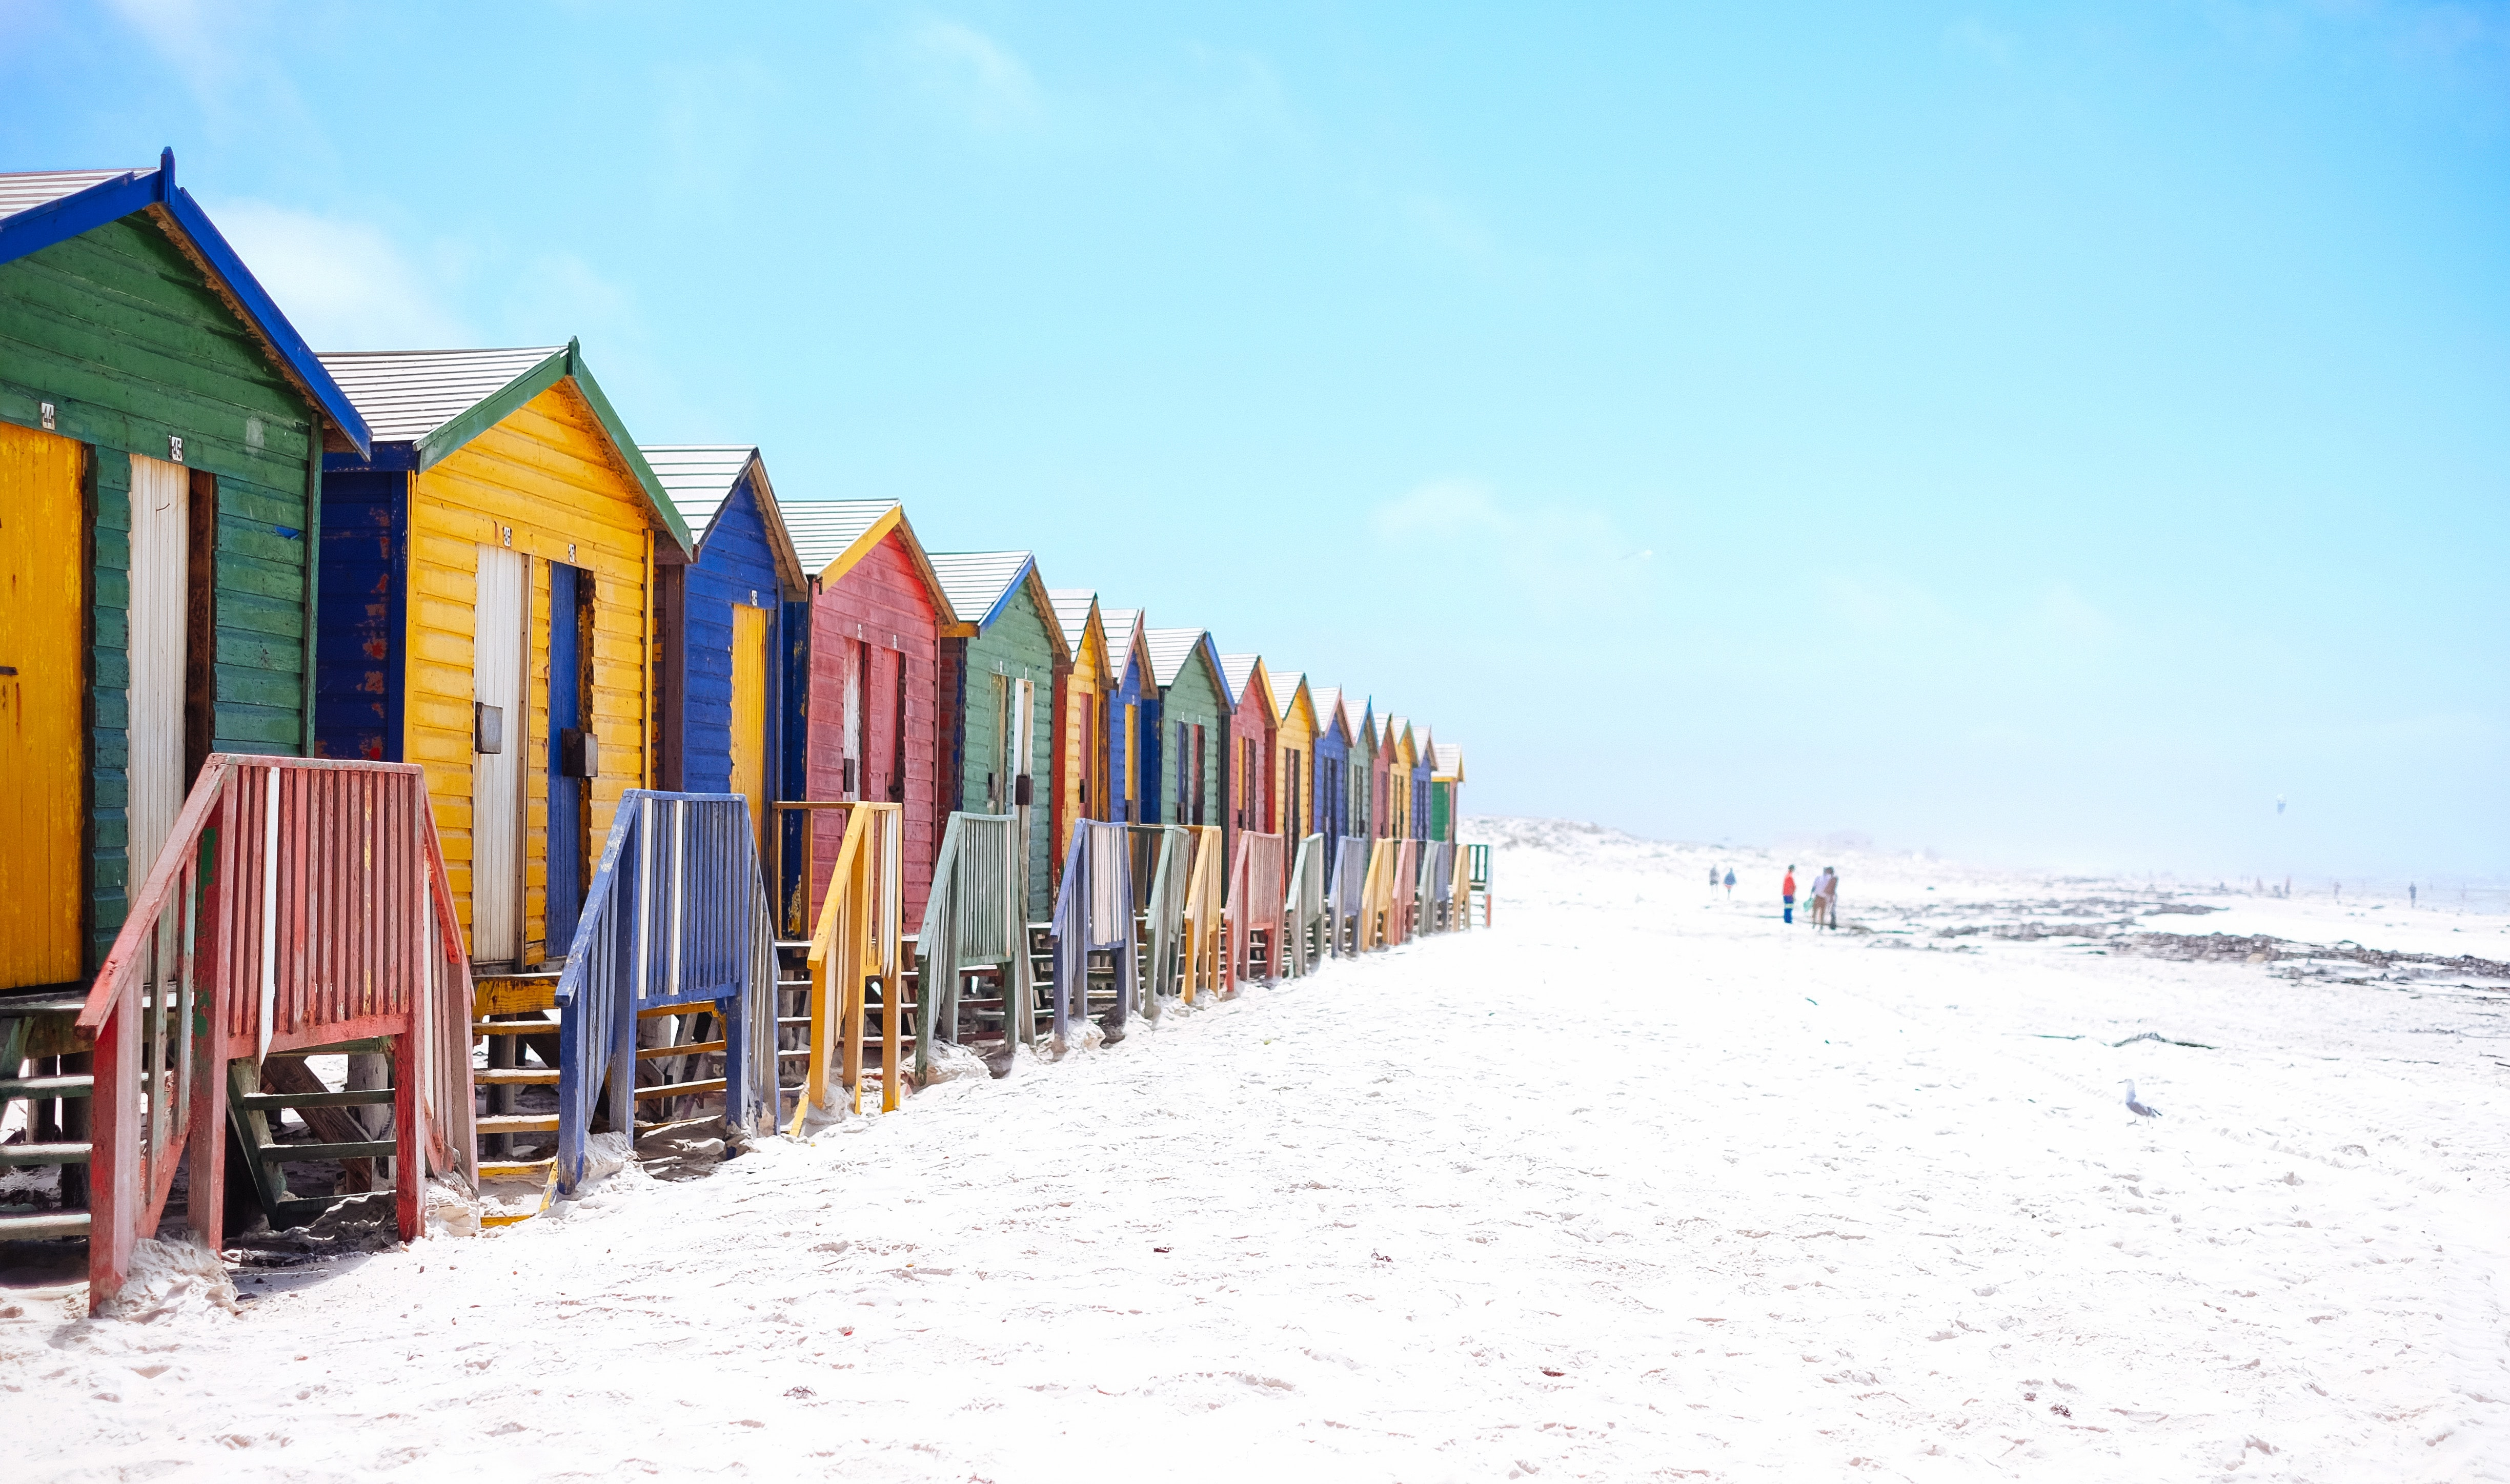 Colorful beach huts on a white sand beach in Muizenberg